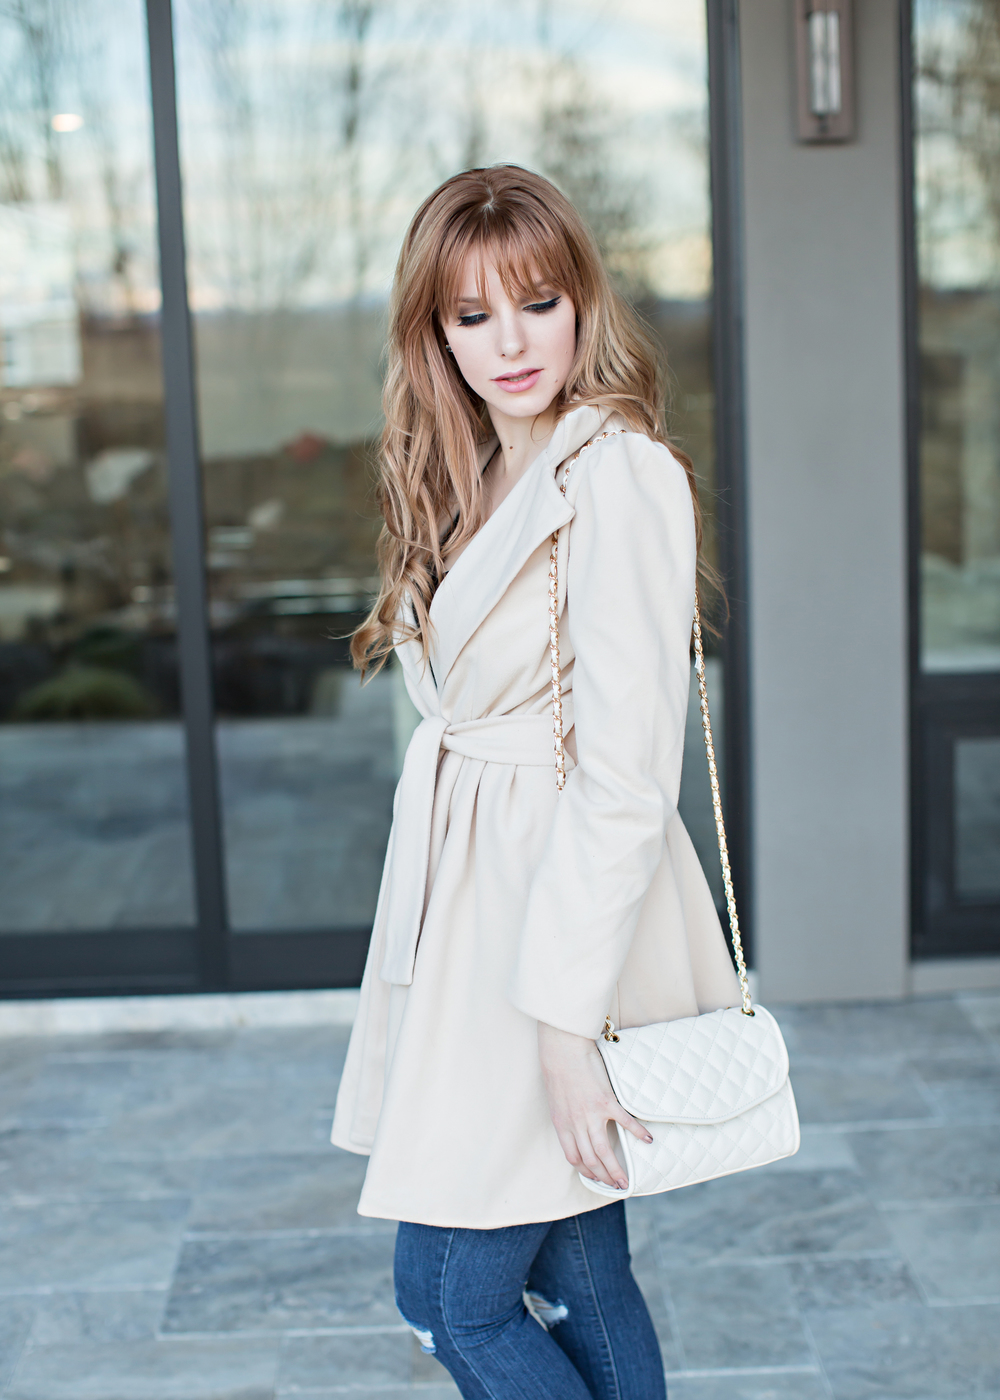 Red head in a camel coat